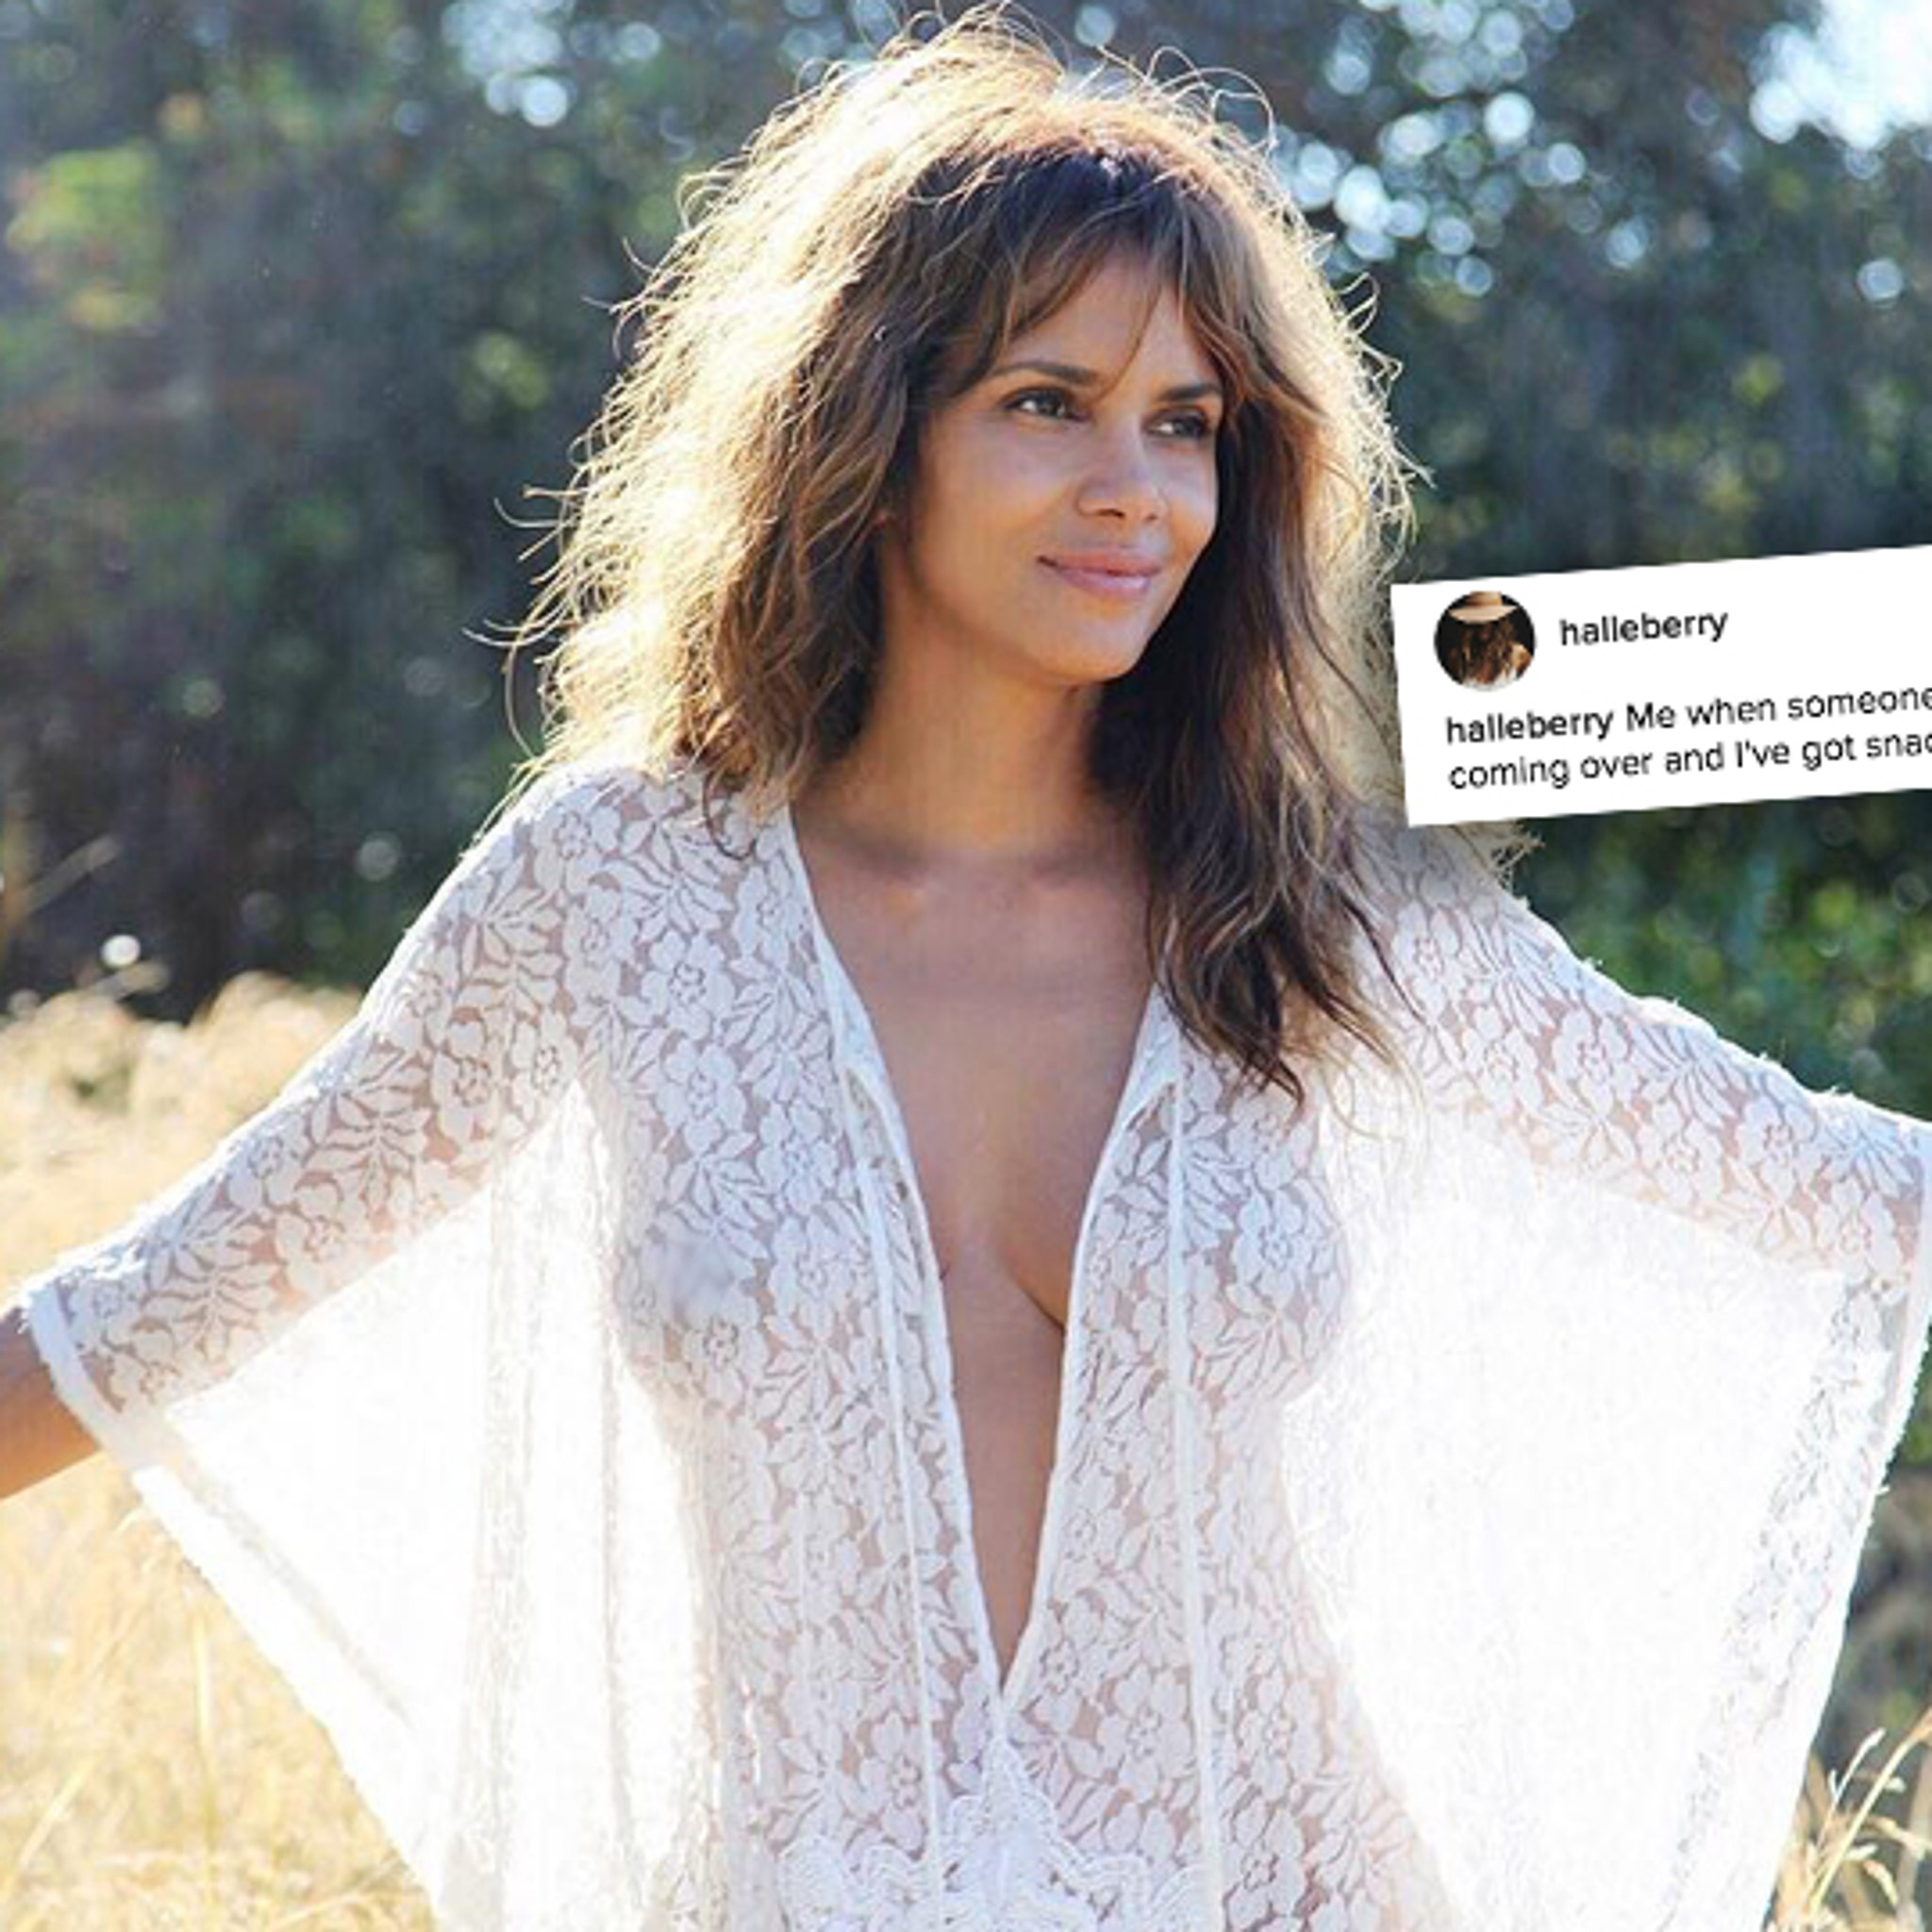 Halle Berry Posts Topless Pic, But Only for Snacks